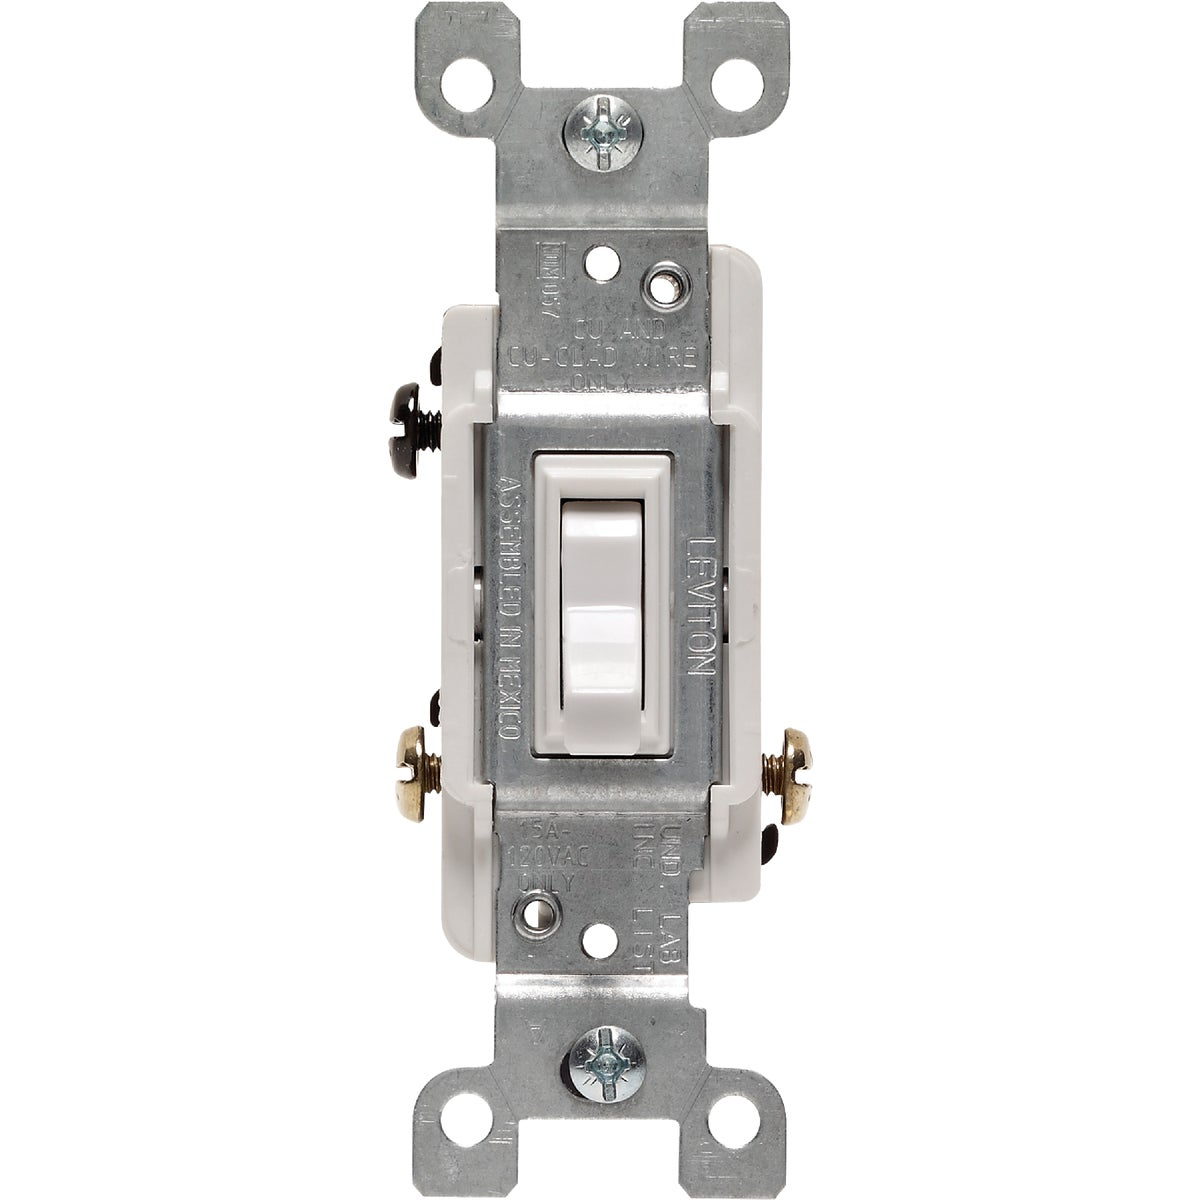 WHT 3-WAY SWITCH - 1453WCP by Leviton Mfg Co